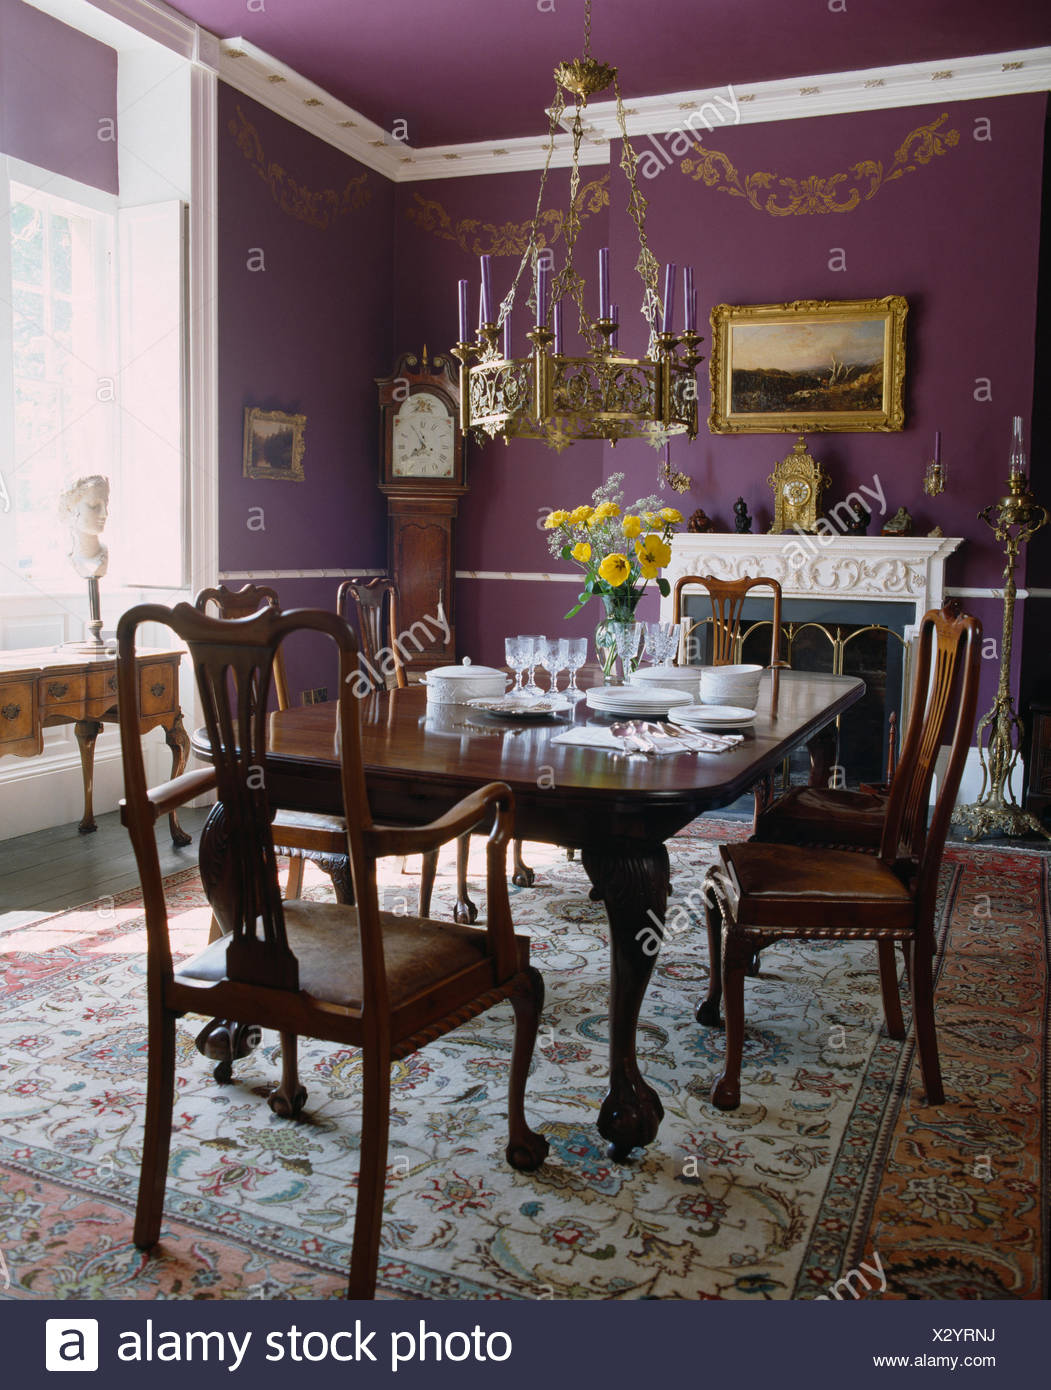 Metal Light Above Antique Mahogany Chairs And Table Set For Lunch In  Traditional Purple Dining Room With Oriental Carpet